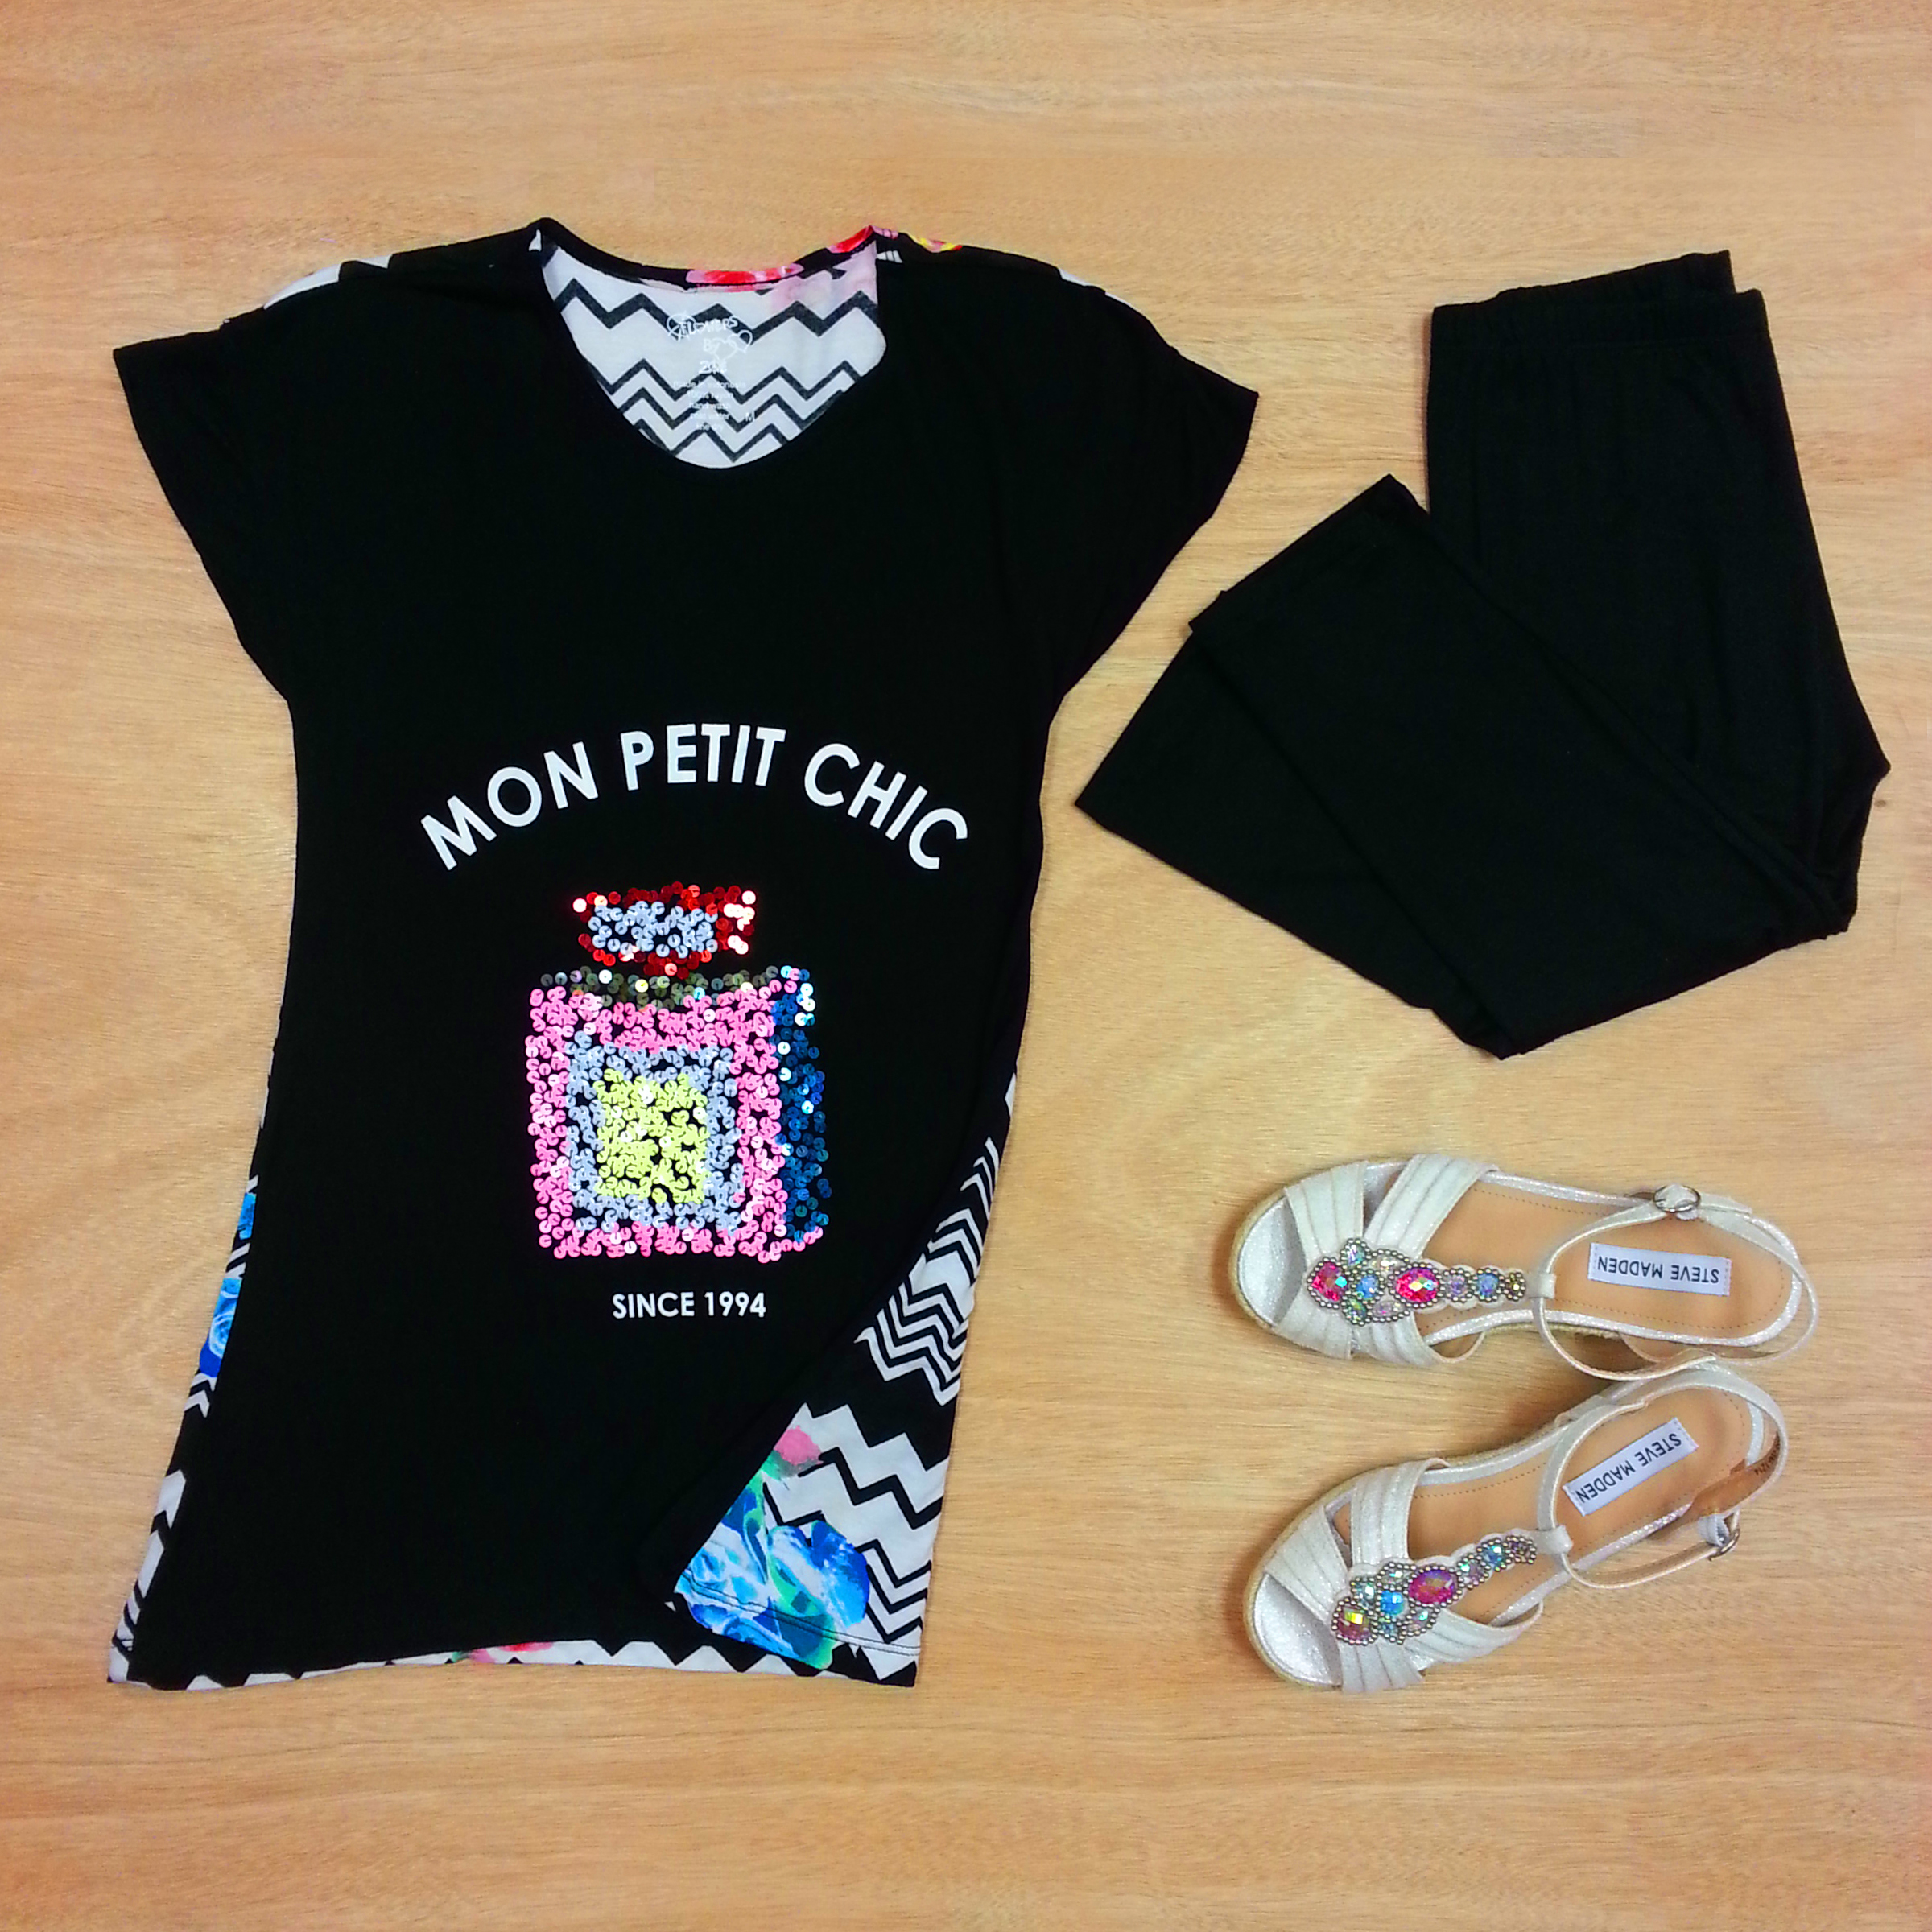 Mon Petit Chic Tee from Flowers by Zoe with Area Code 407 leggings and Steve Madden wedges